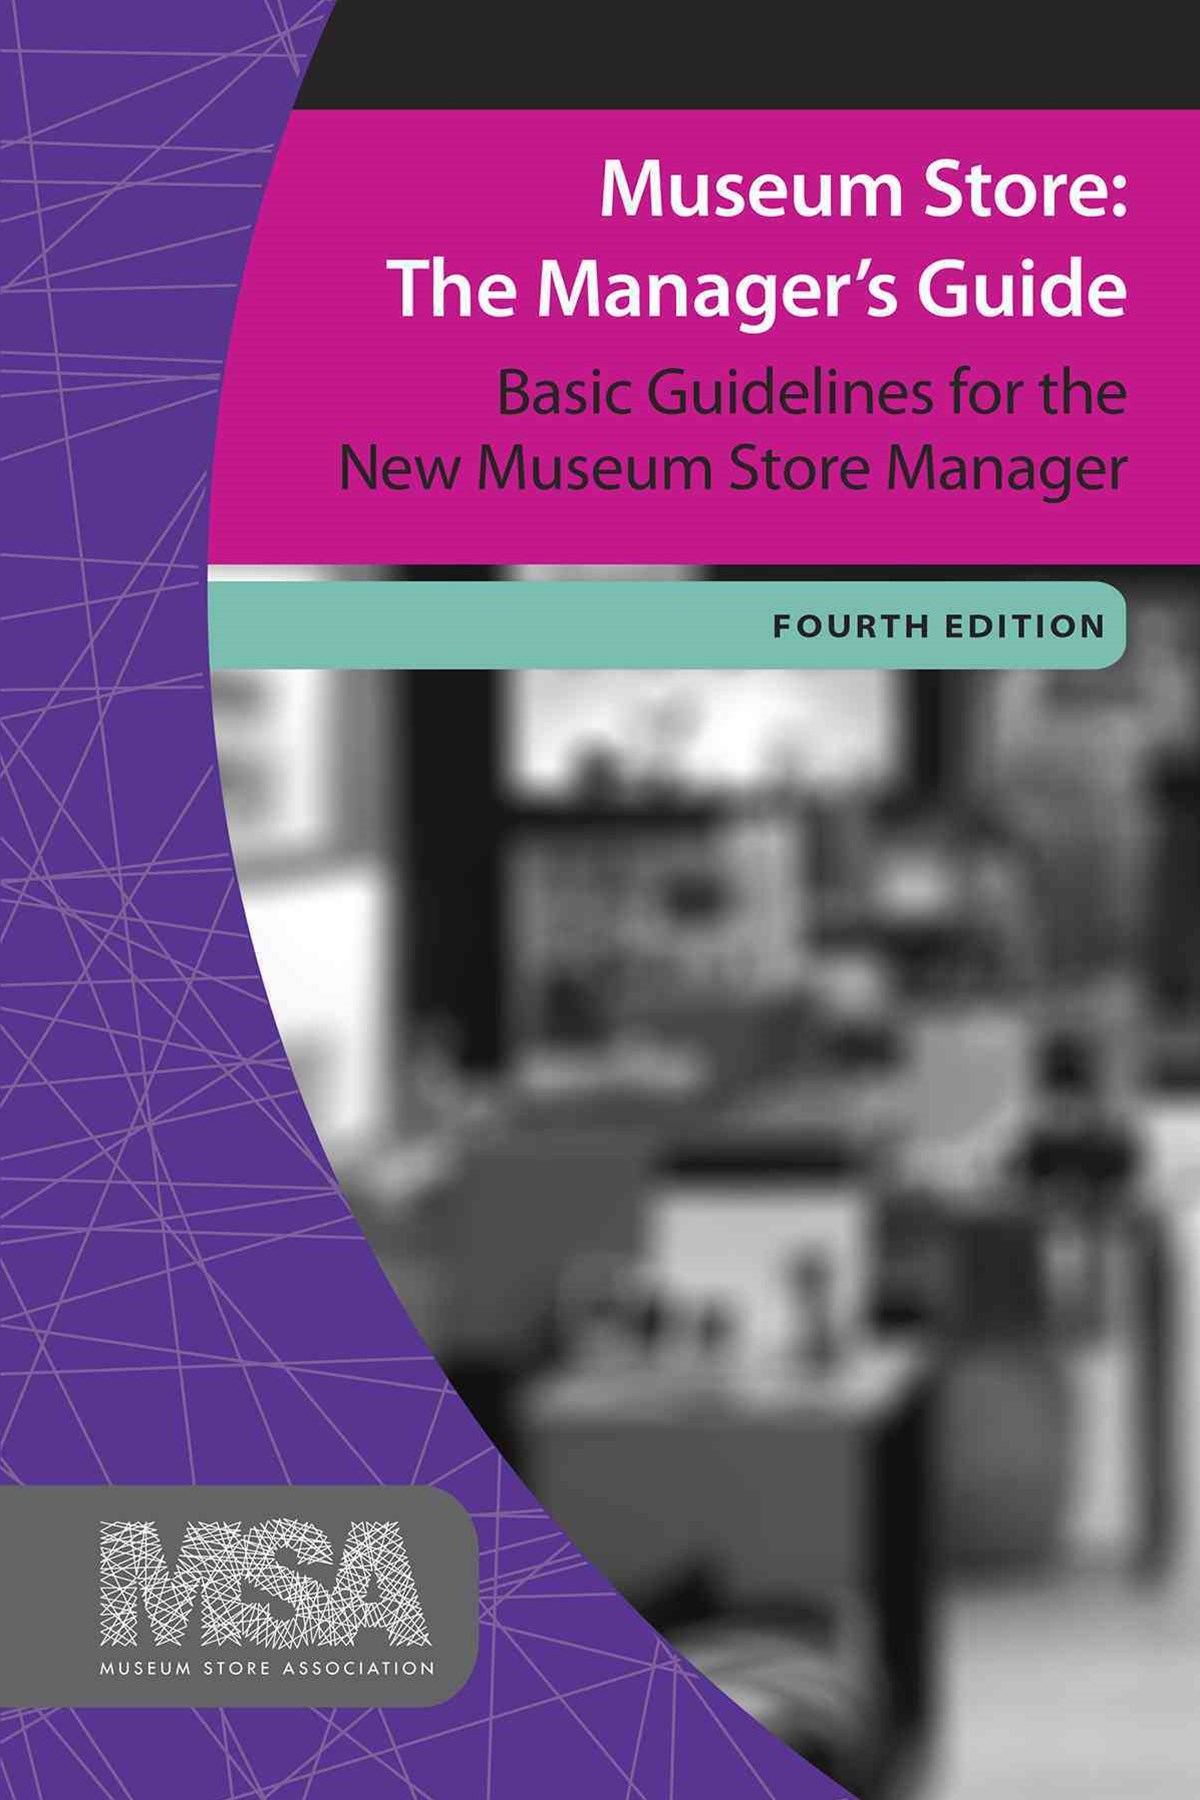 Museum Store: The Manager's Guide